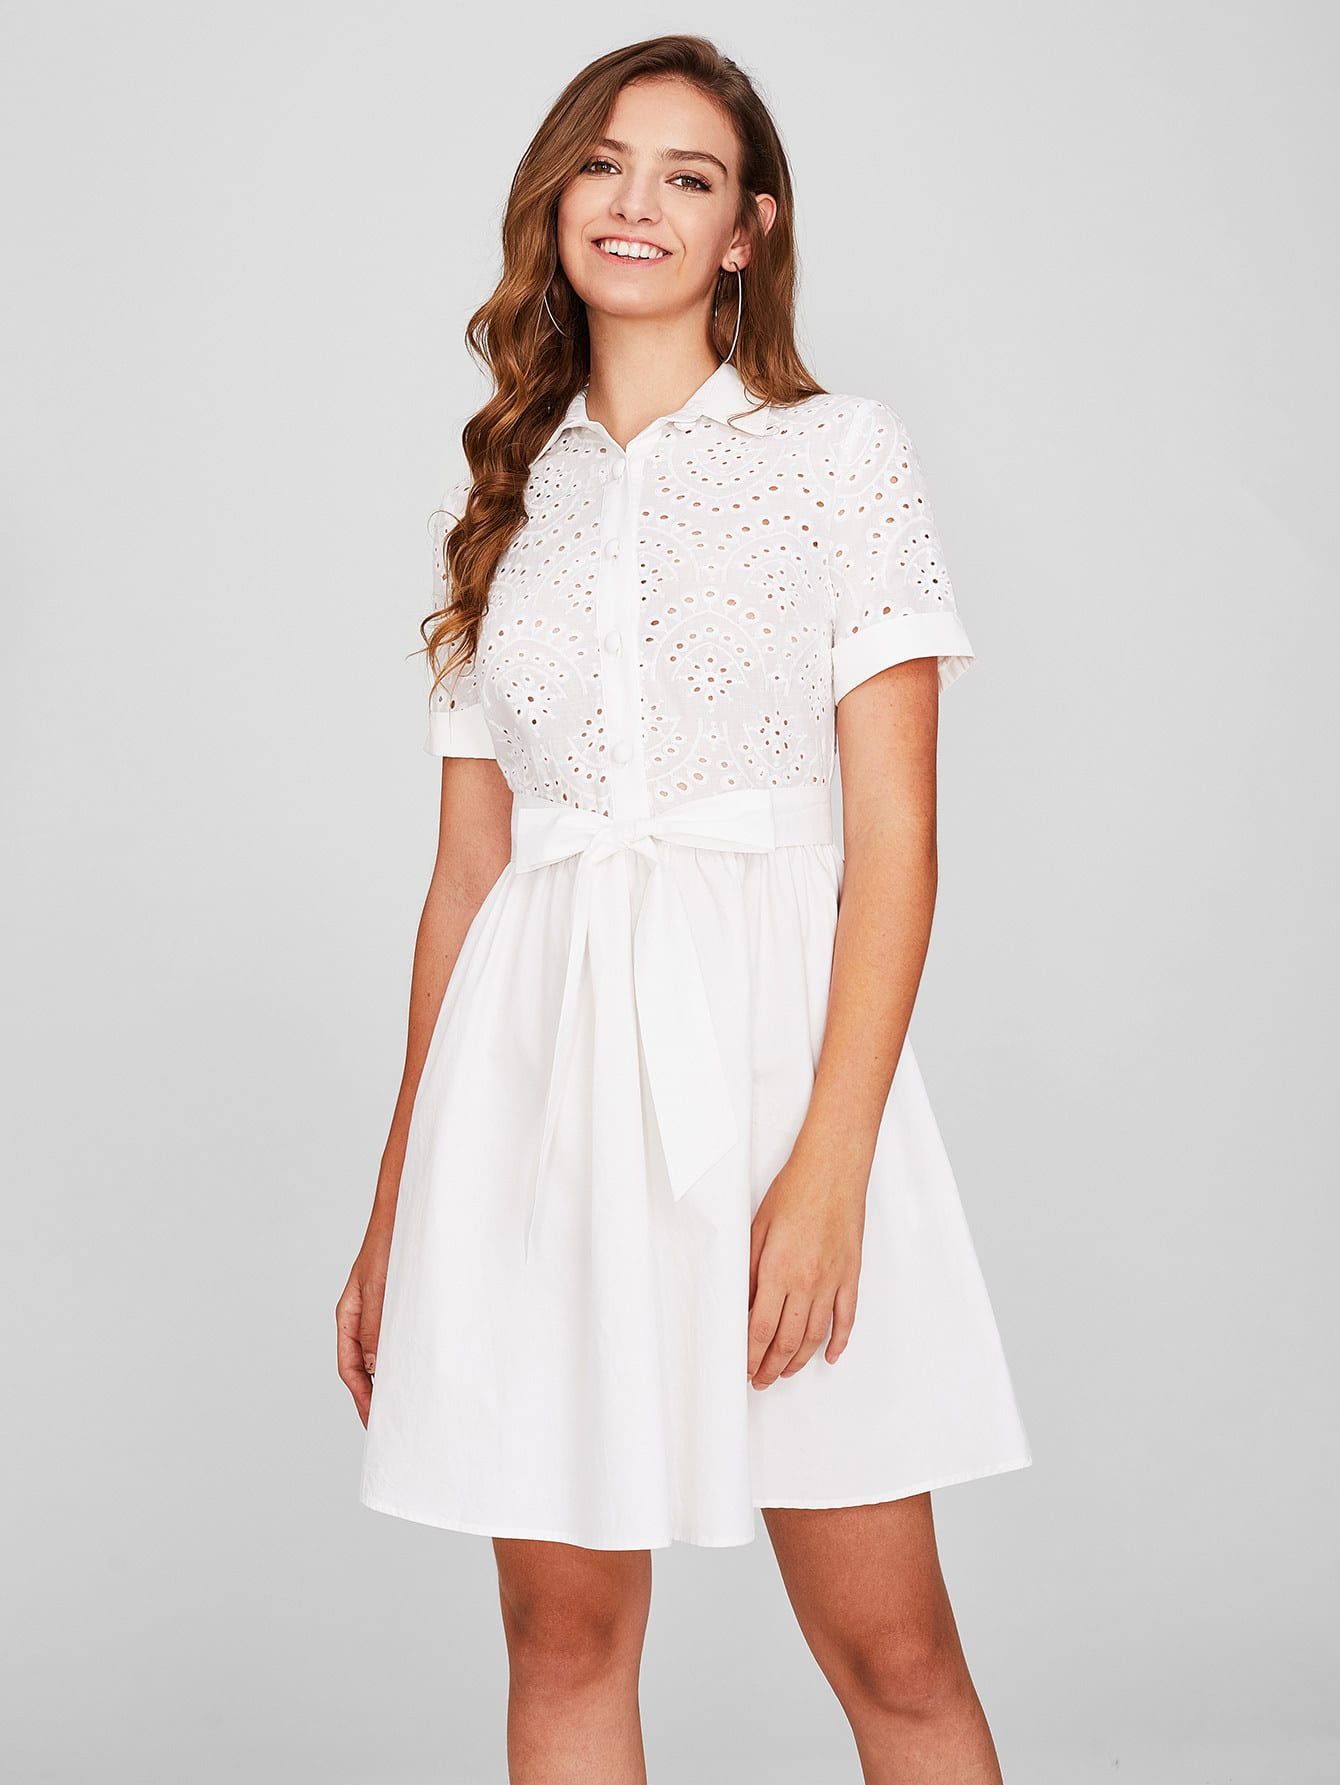 Eyelet Embroidered Bodice Bow Waist Fit & Flare Dress eyelet embroidered self belted dress